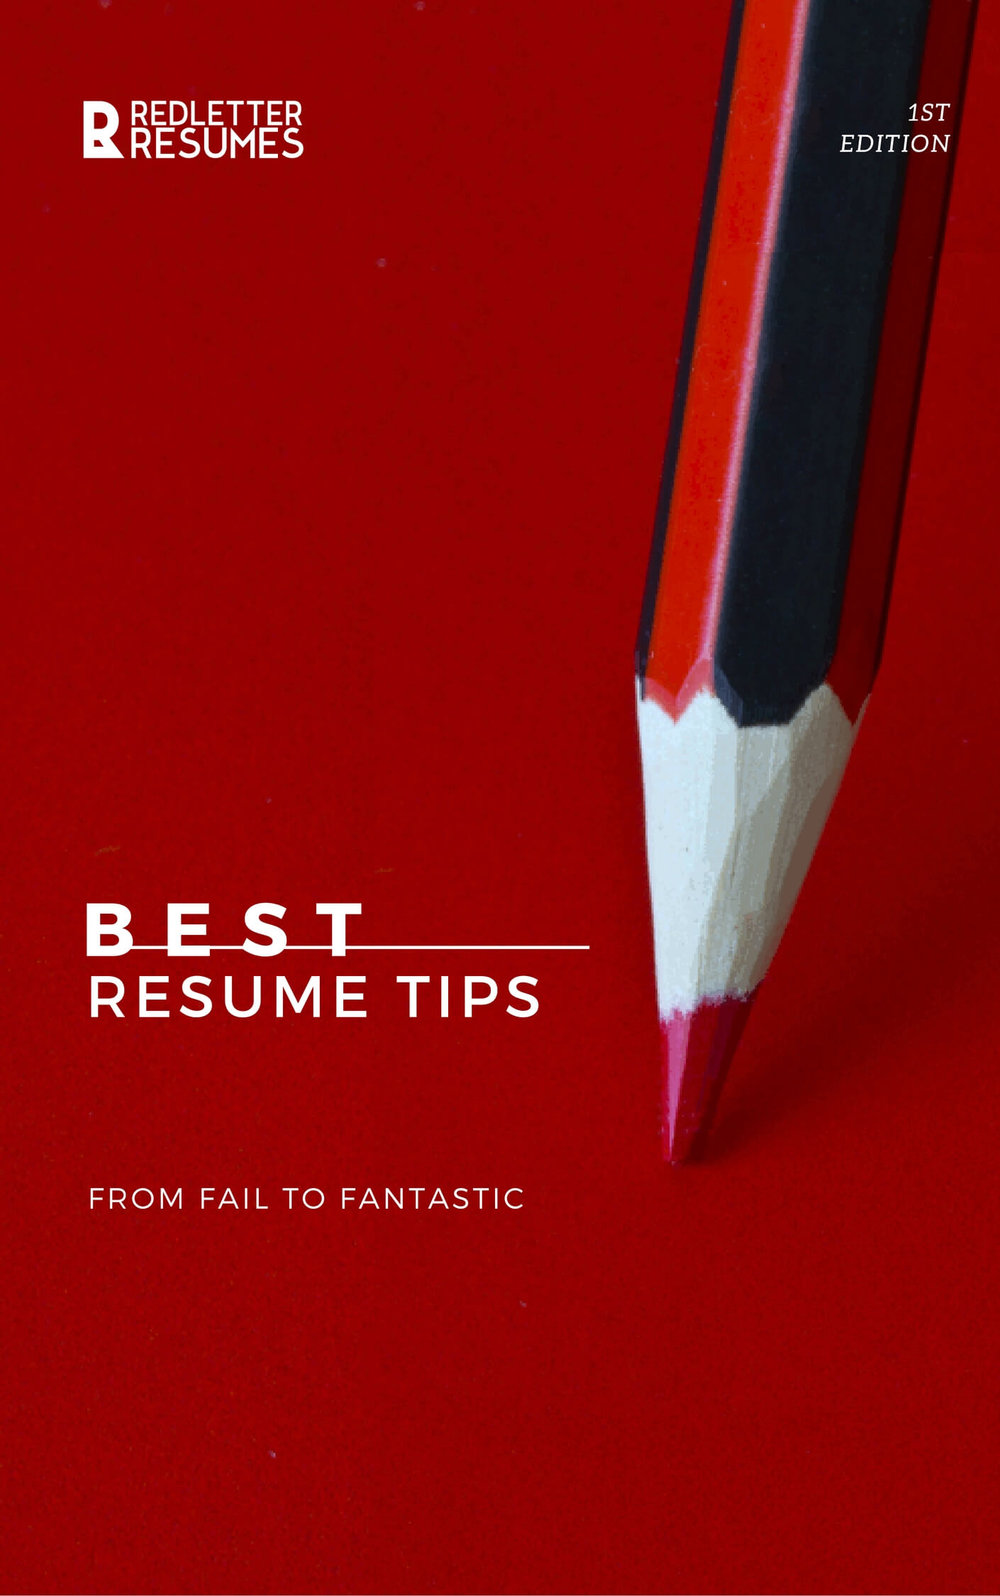 Best Resume Tips eBook by Red Letter Resumes LLC | Get it now on Amazon!